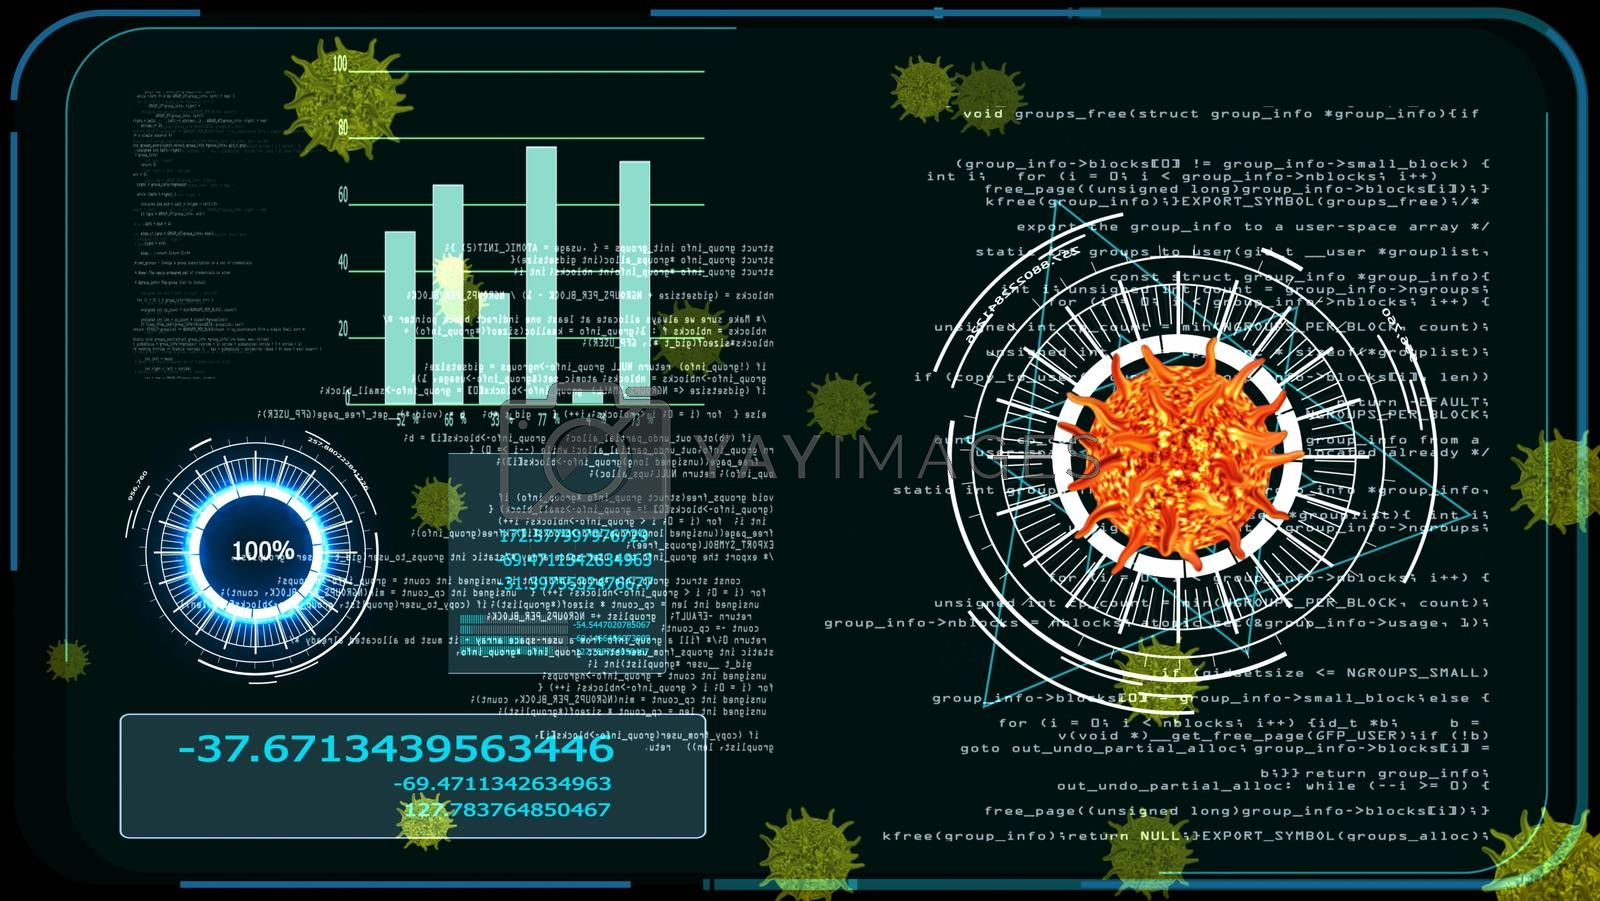 virus covid 19 mutation digital graph analysis to find vaccine and medicine on monitor